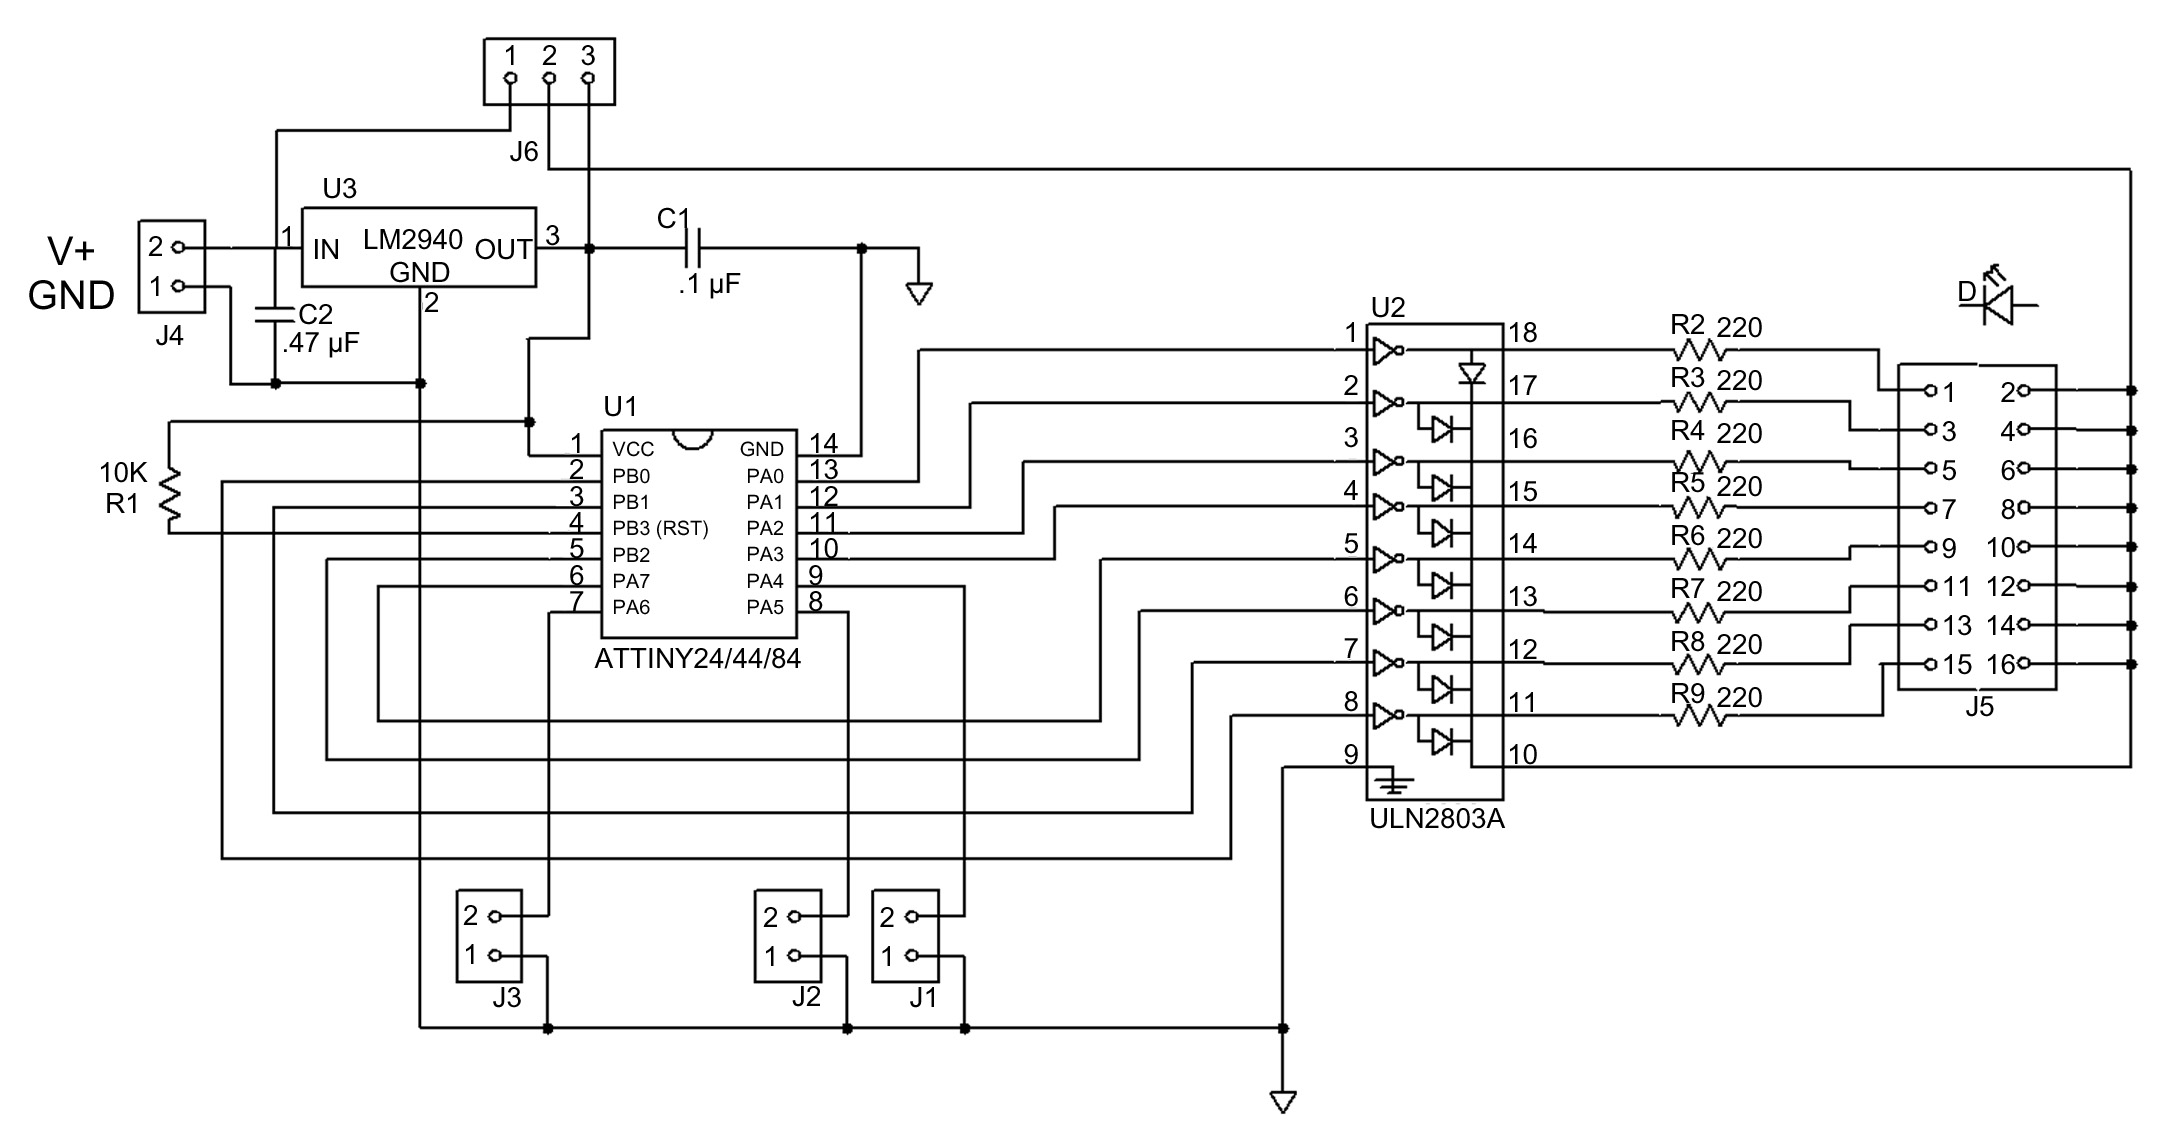 Das Blinkenboard Nuts Volts Magazine Triac Voltage Controller Public Circuit Online Simulator Schematic